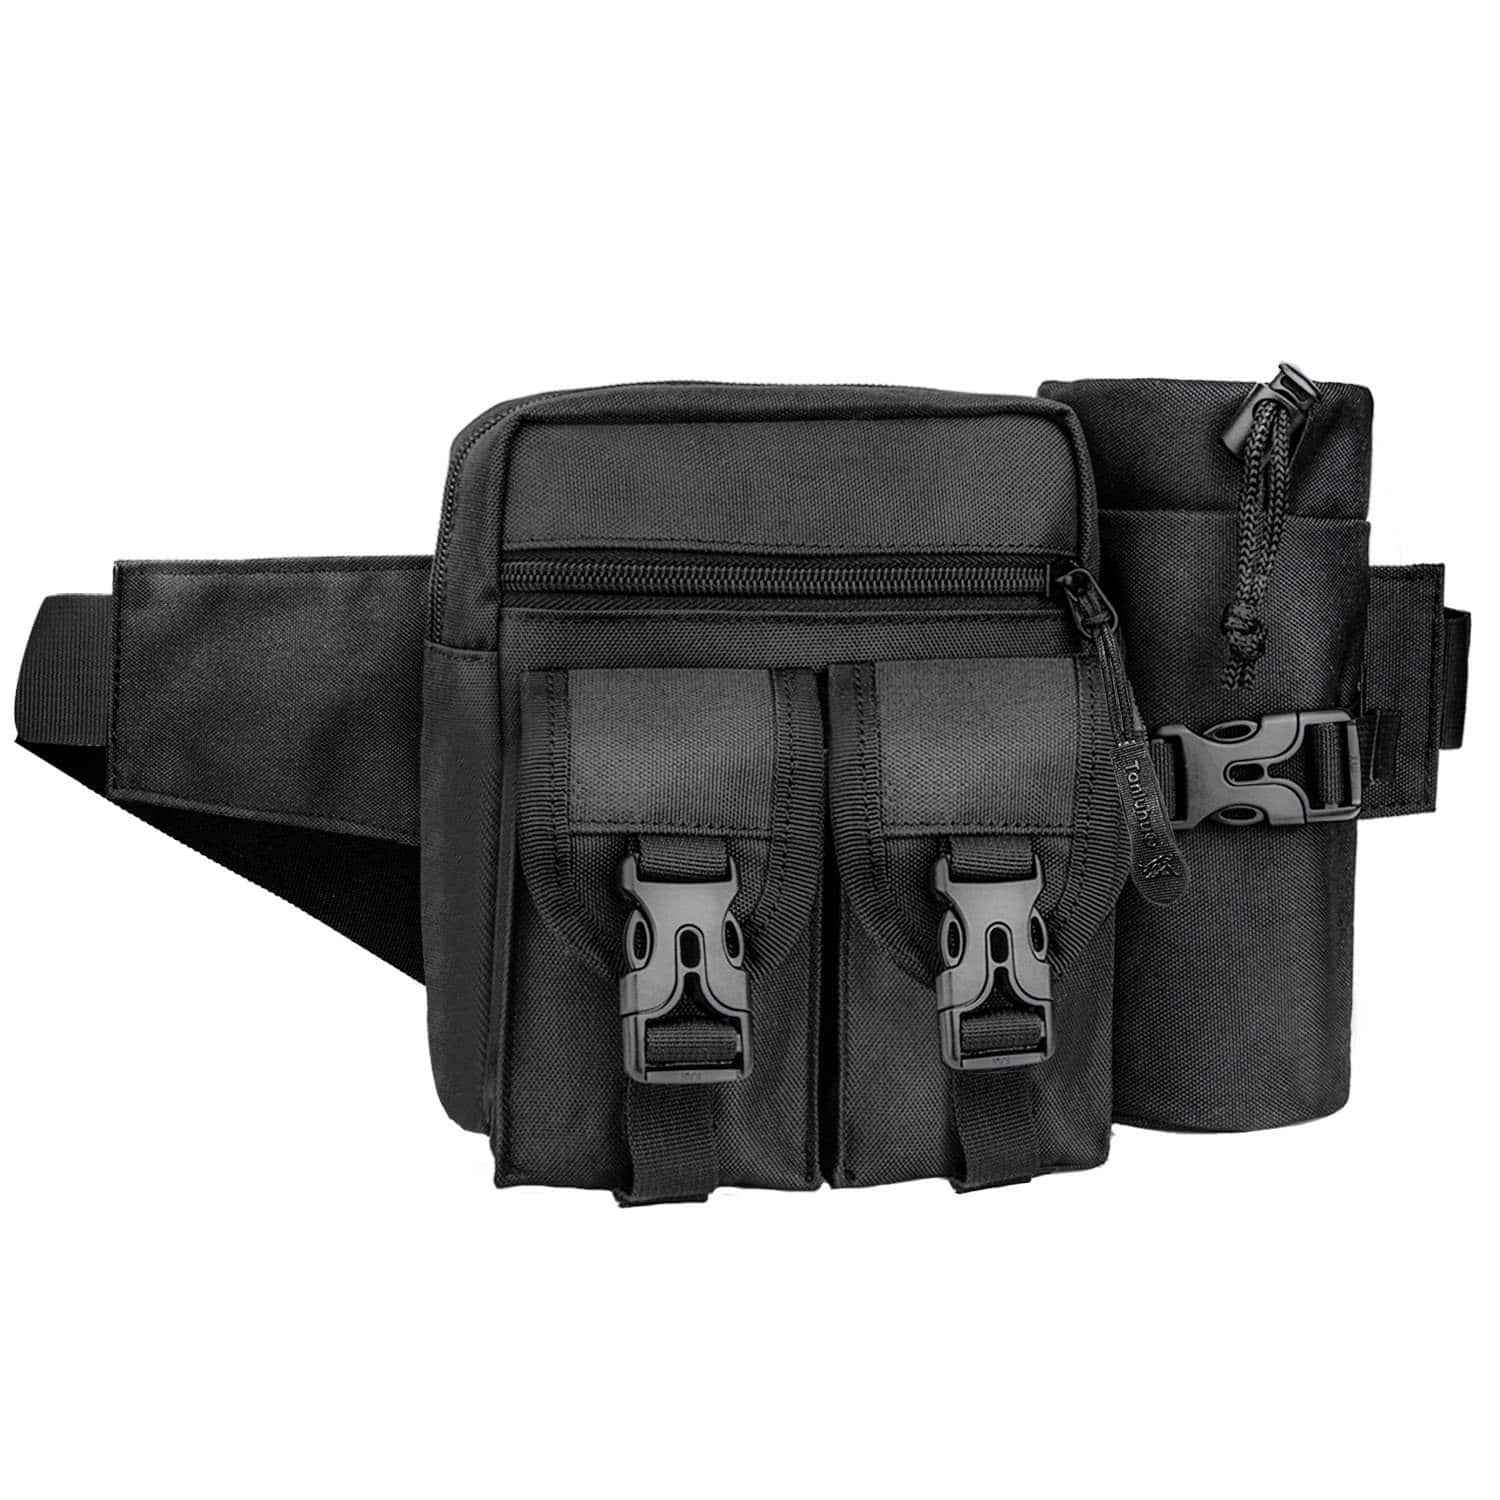 VANWALK Waterproof Military Outdoor Waist Bag Pack $8.99 @Amazon